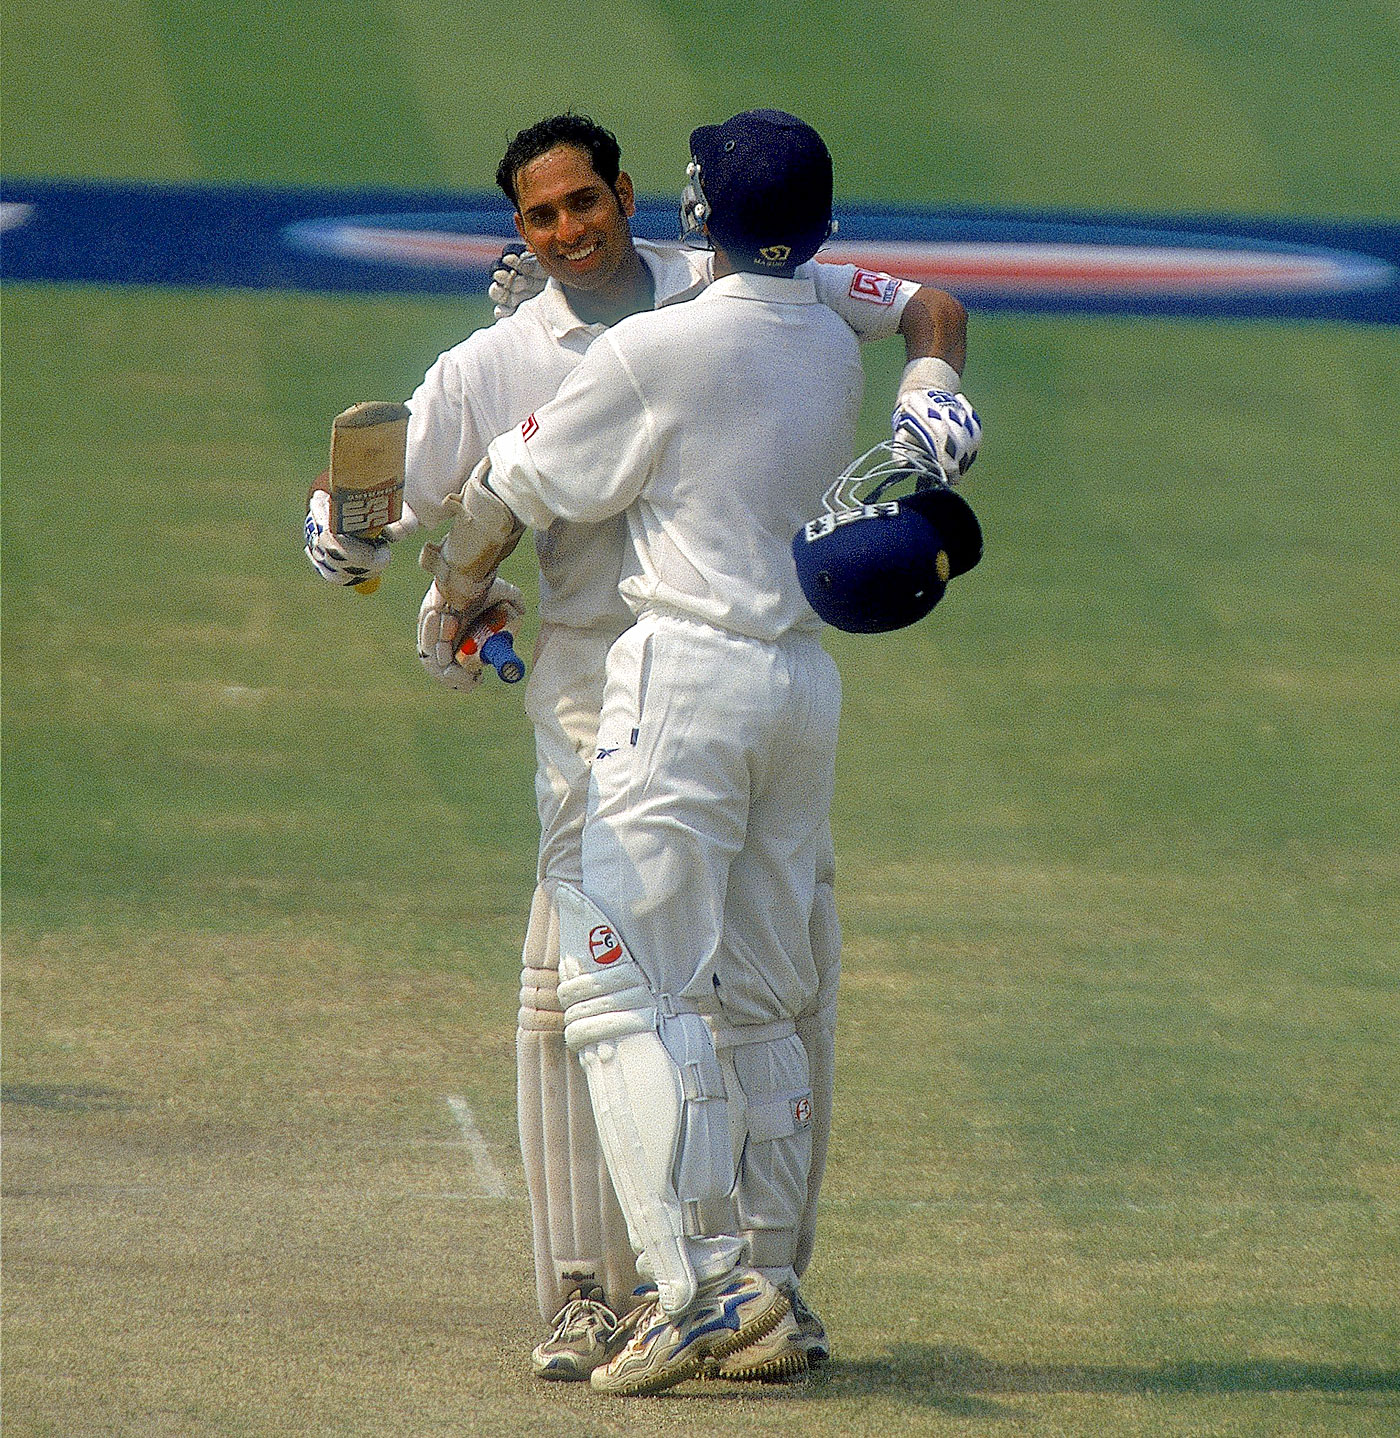 VVS Laxman and Rahul Dravid formed a brilliant partnership to help India win the Kolkata Test. (Getty Images)